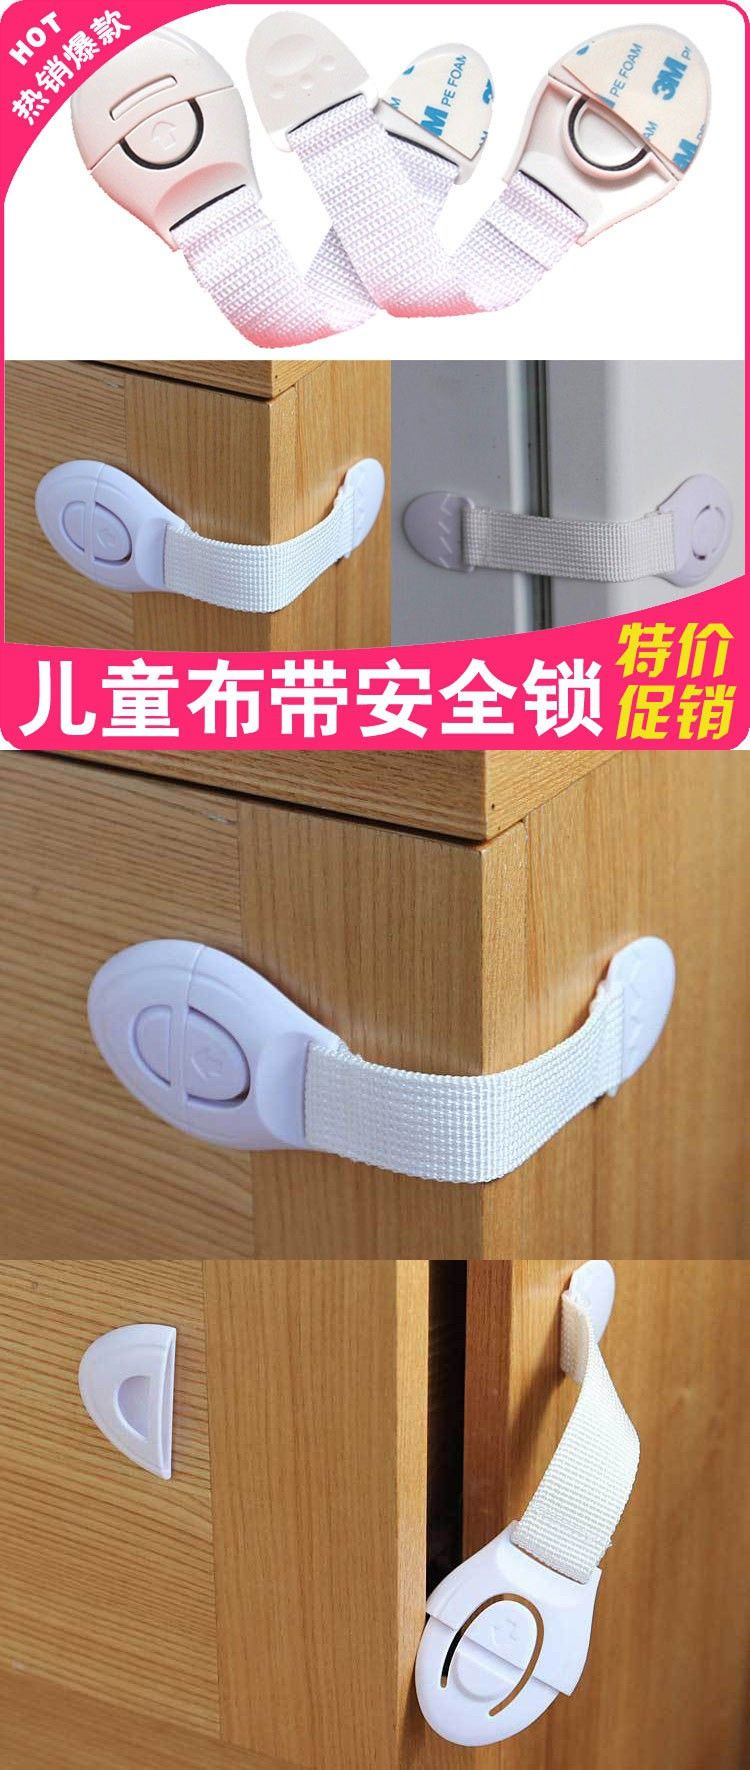 knob knobs deadbolts once door automaticallydefiant k the nongzi for hardware with co locks doors